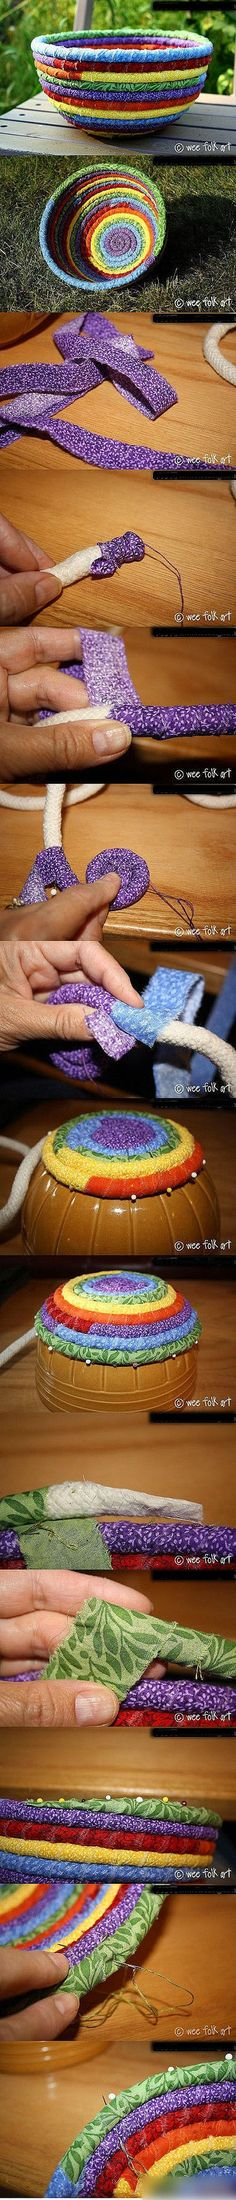 Rope basket: something to do with all those fabric scraps! Diy Projects To Try, Crafts To Make, Fun Crafts, Craft Projects, Craft Ideas, Creative Crafts, Diy Ideas, Sewing Hacks, Sewing Crafts